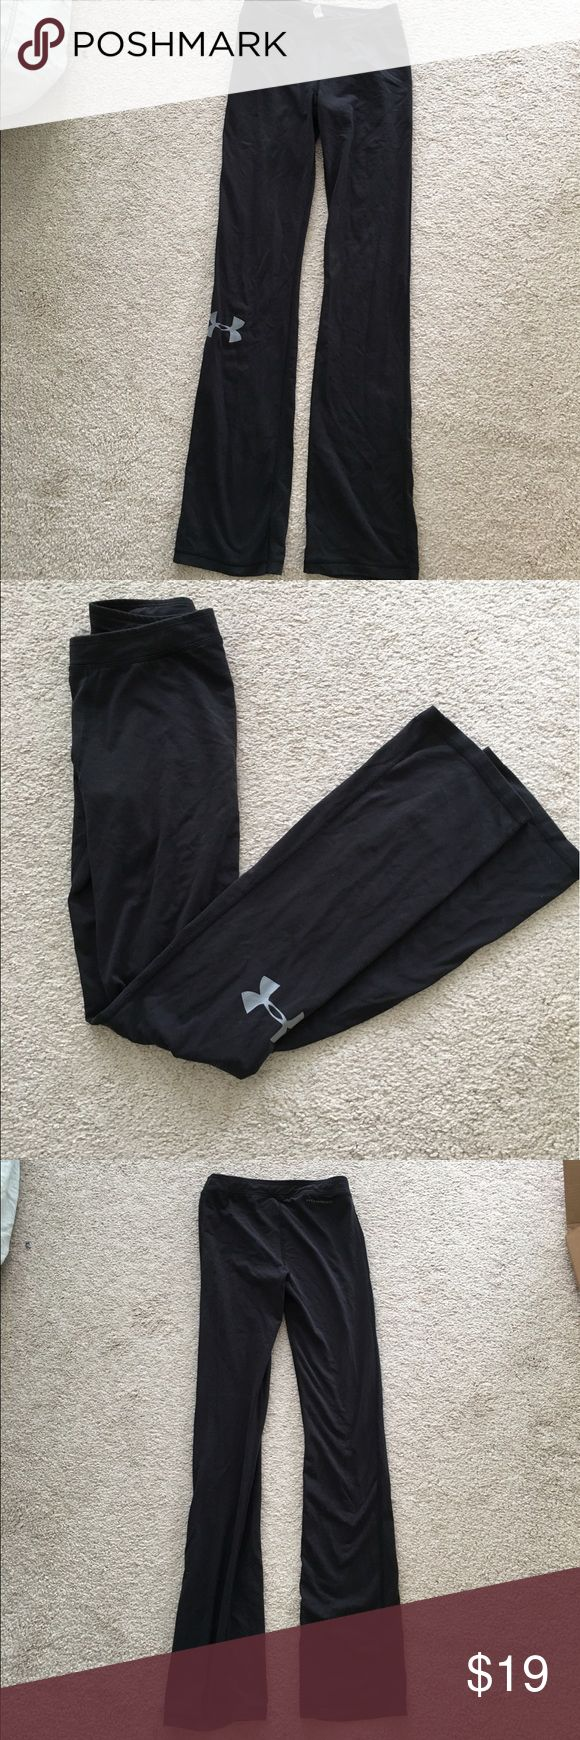 Women's Under Armour Yoga Pants Authentic Under armour fitted yoga pants. Thin elastic band at the top. Very slight bootcut fit like most yoga pants. Thin soft material! In perfect condition - zero damage or signs of wear. Under Armour Pants Track Pants & Joggers